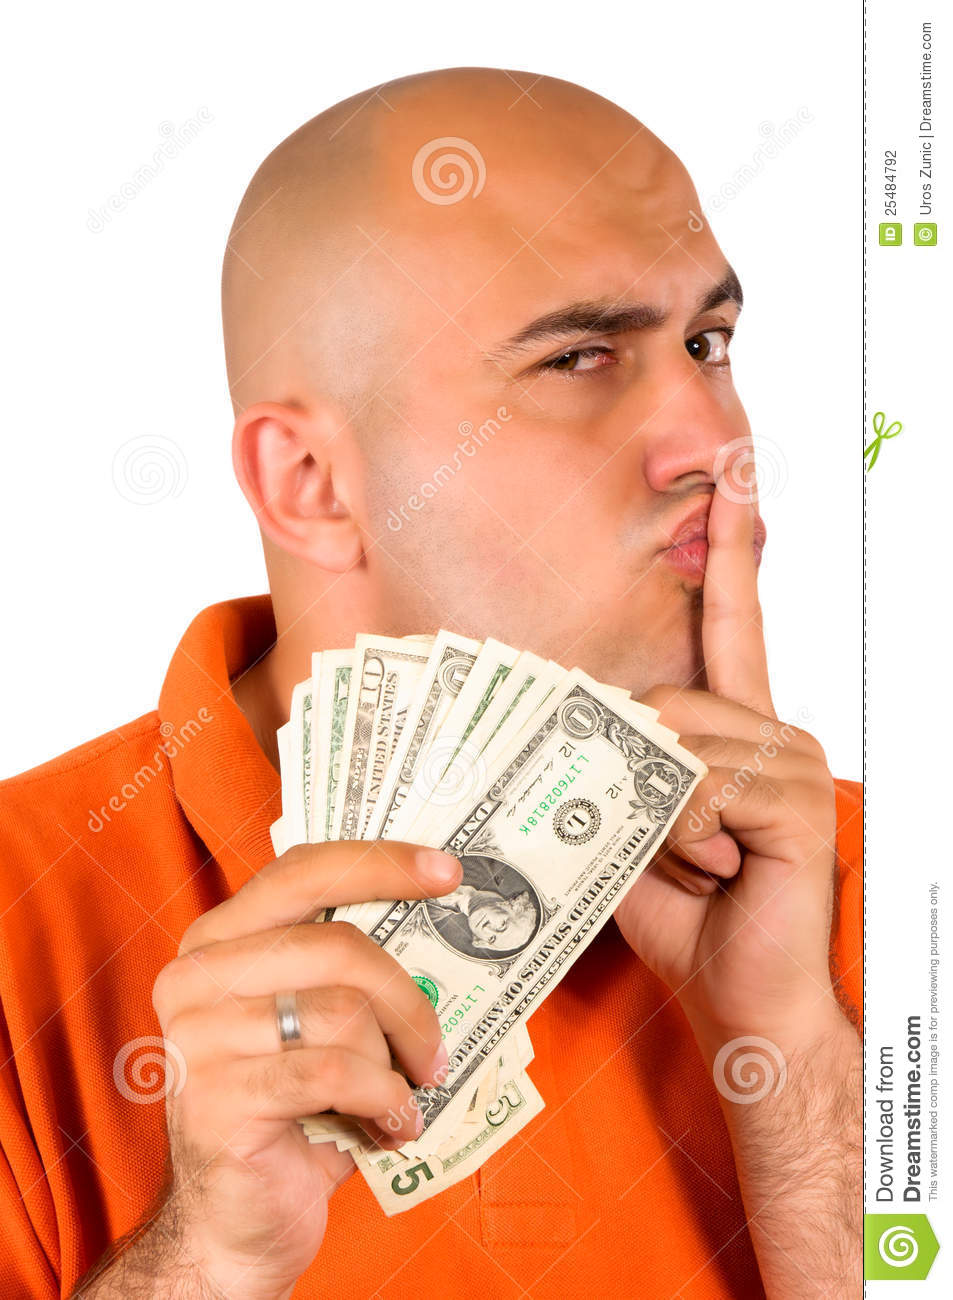 Stealing Money Stock Photography - Image: 25484792